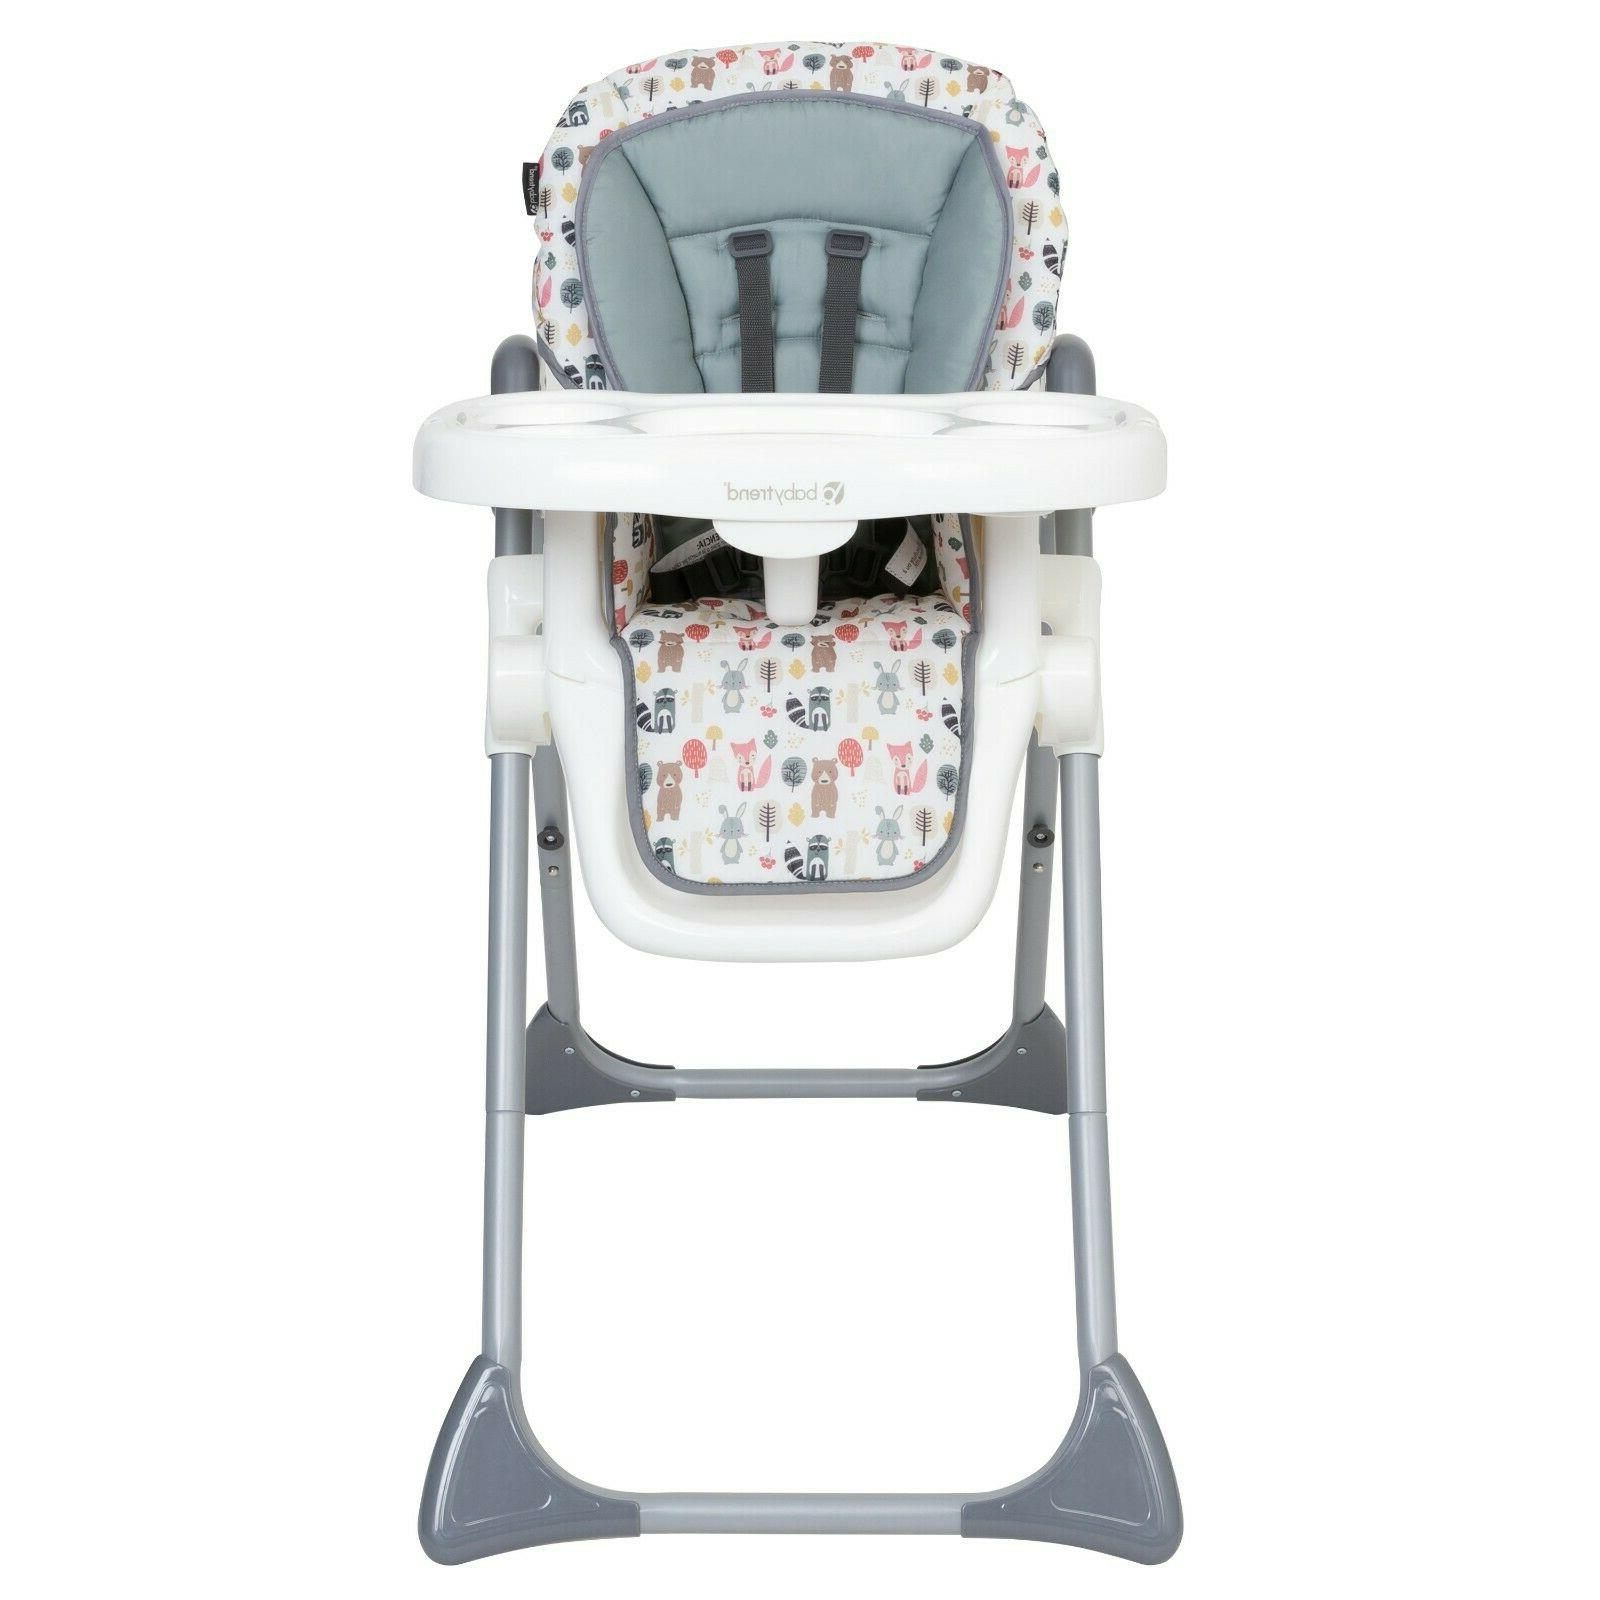 Baby Chair Adjustable Mealtime